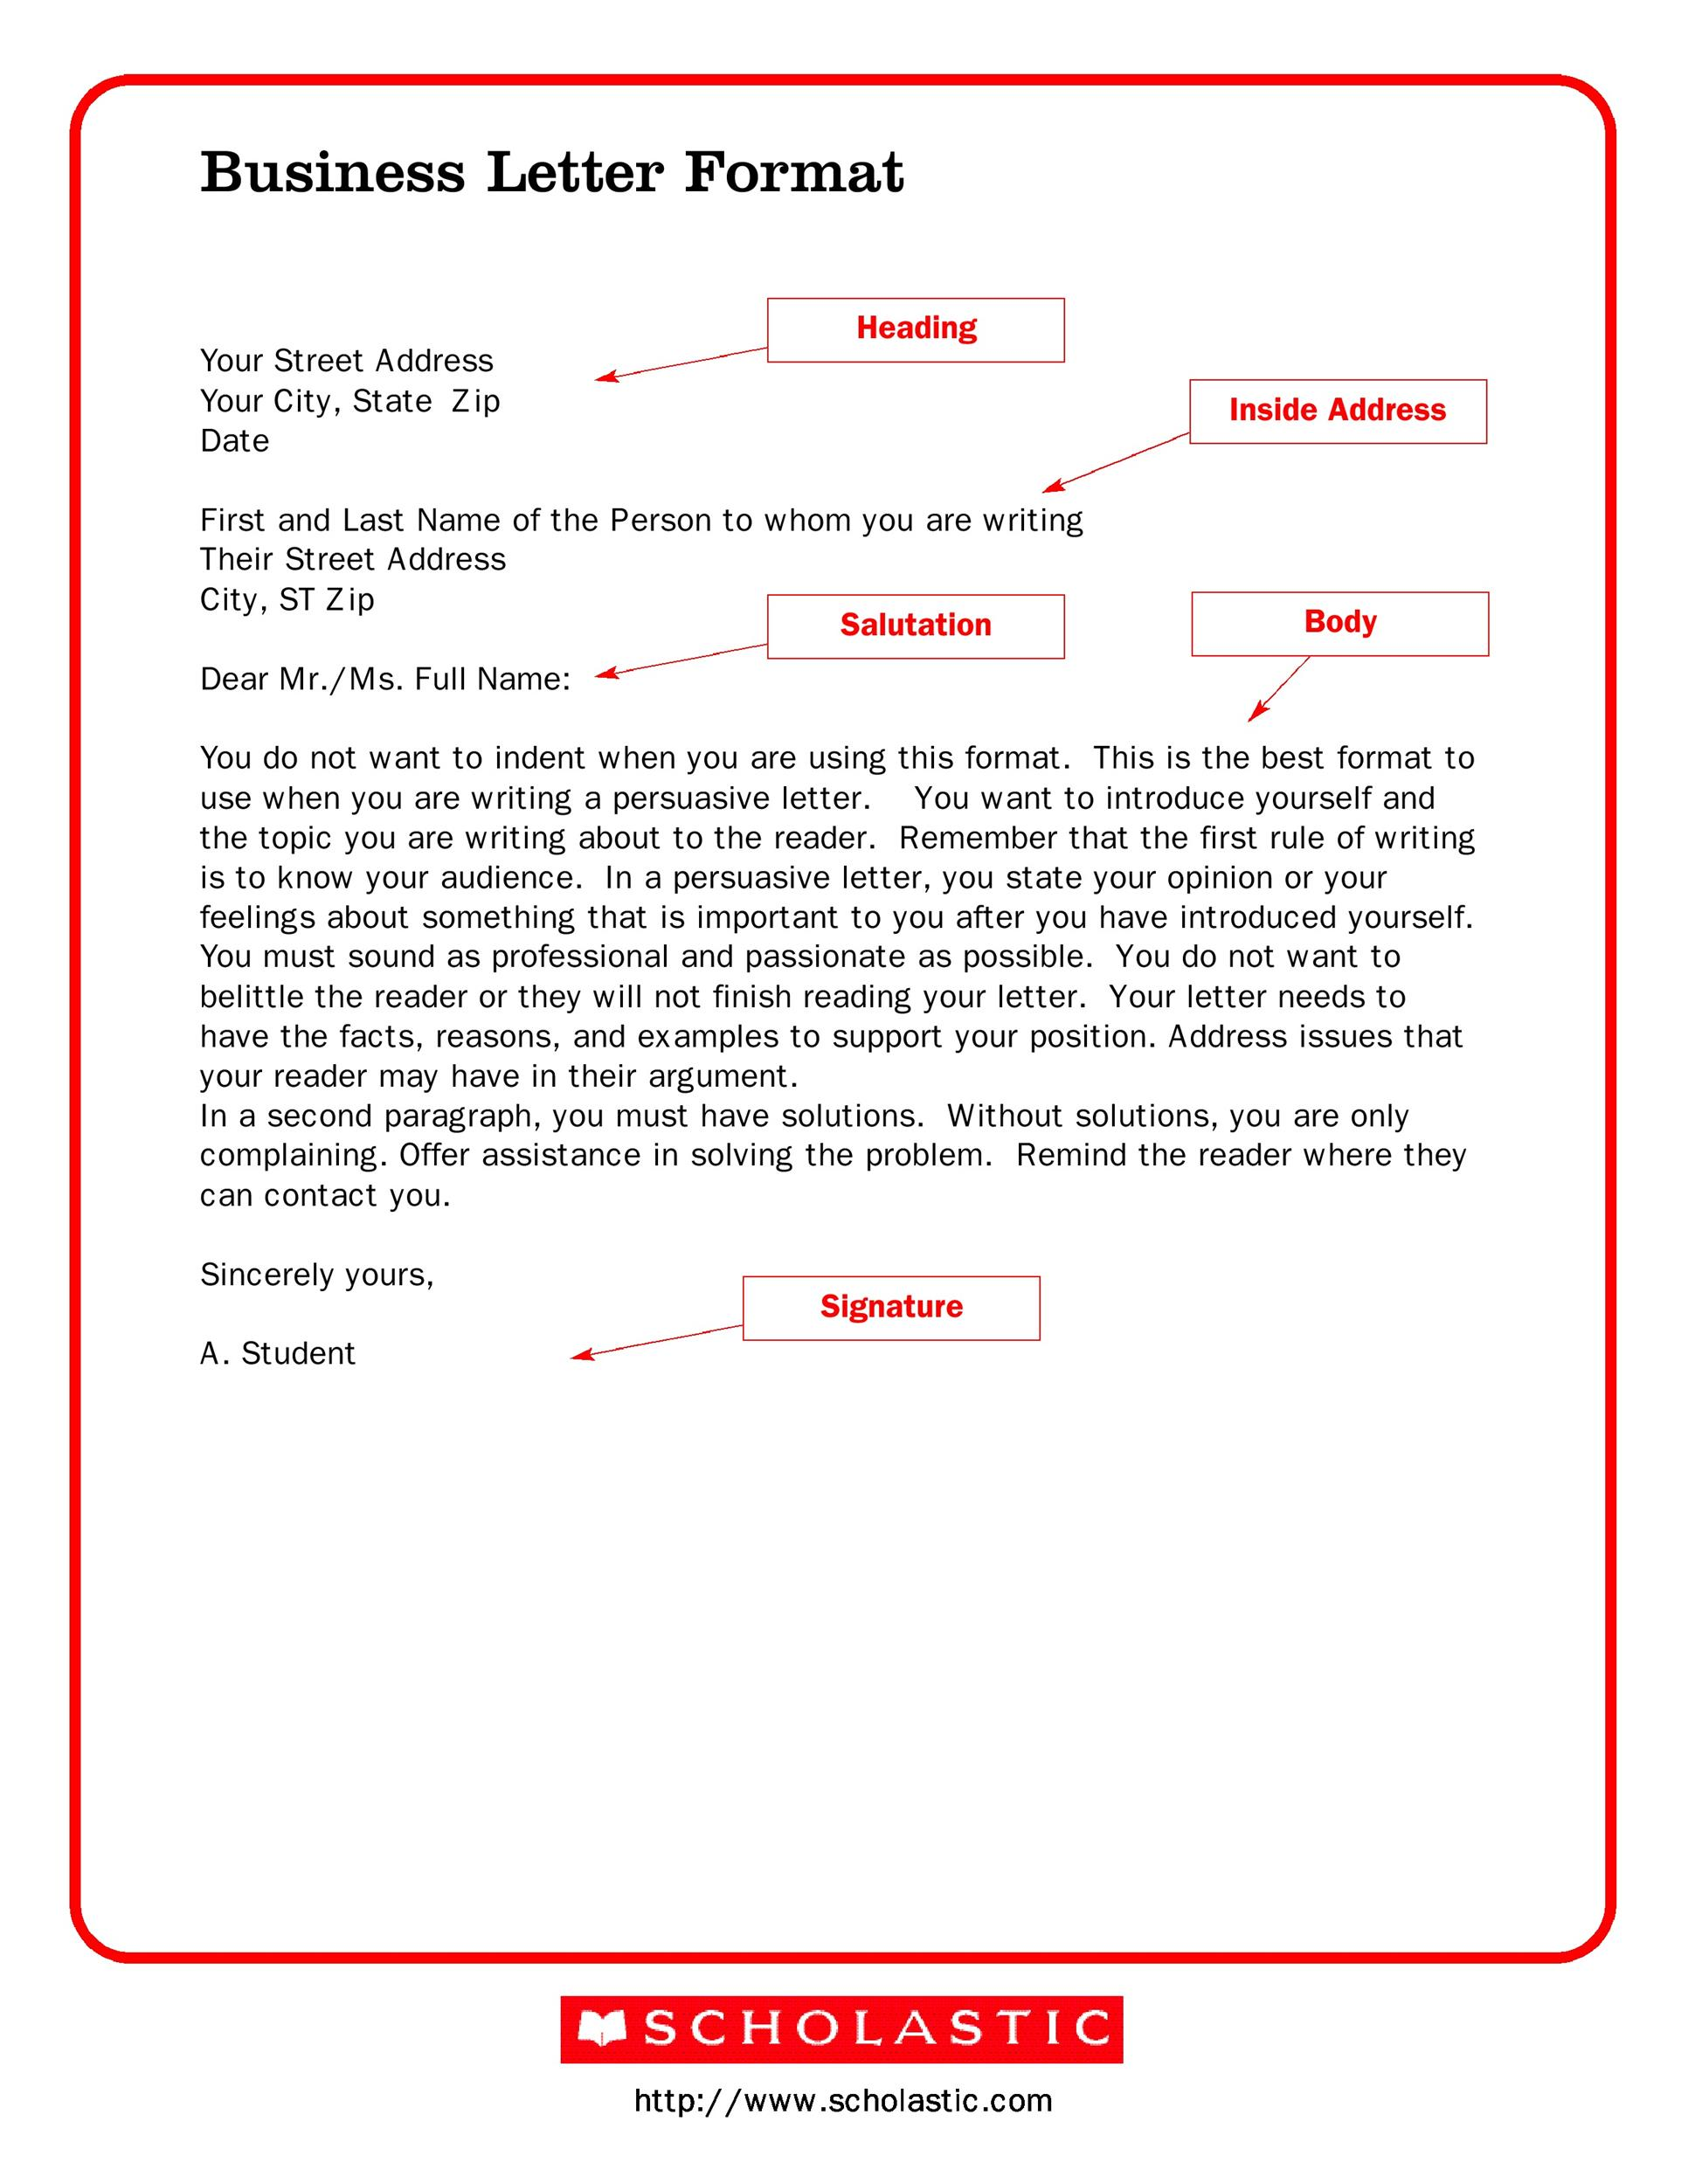 Business Letter Template business letter template tumblr general – Business Letter Sample Word